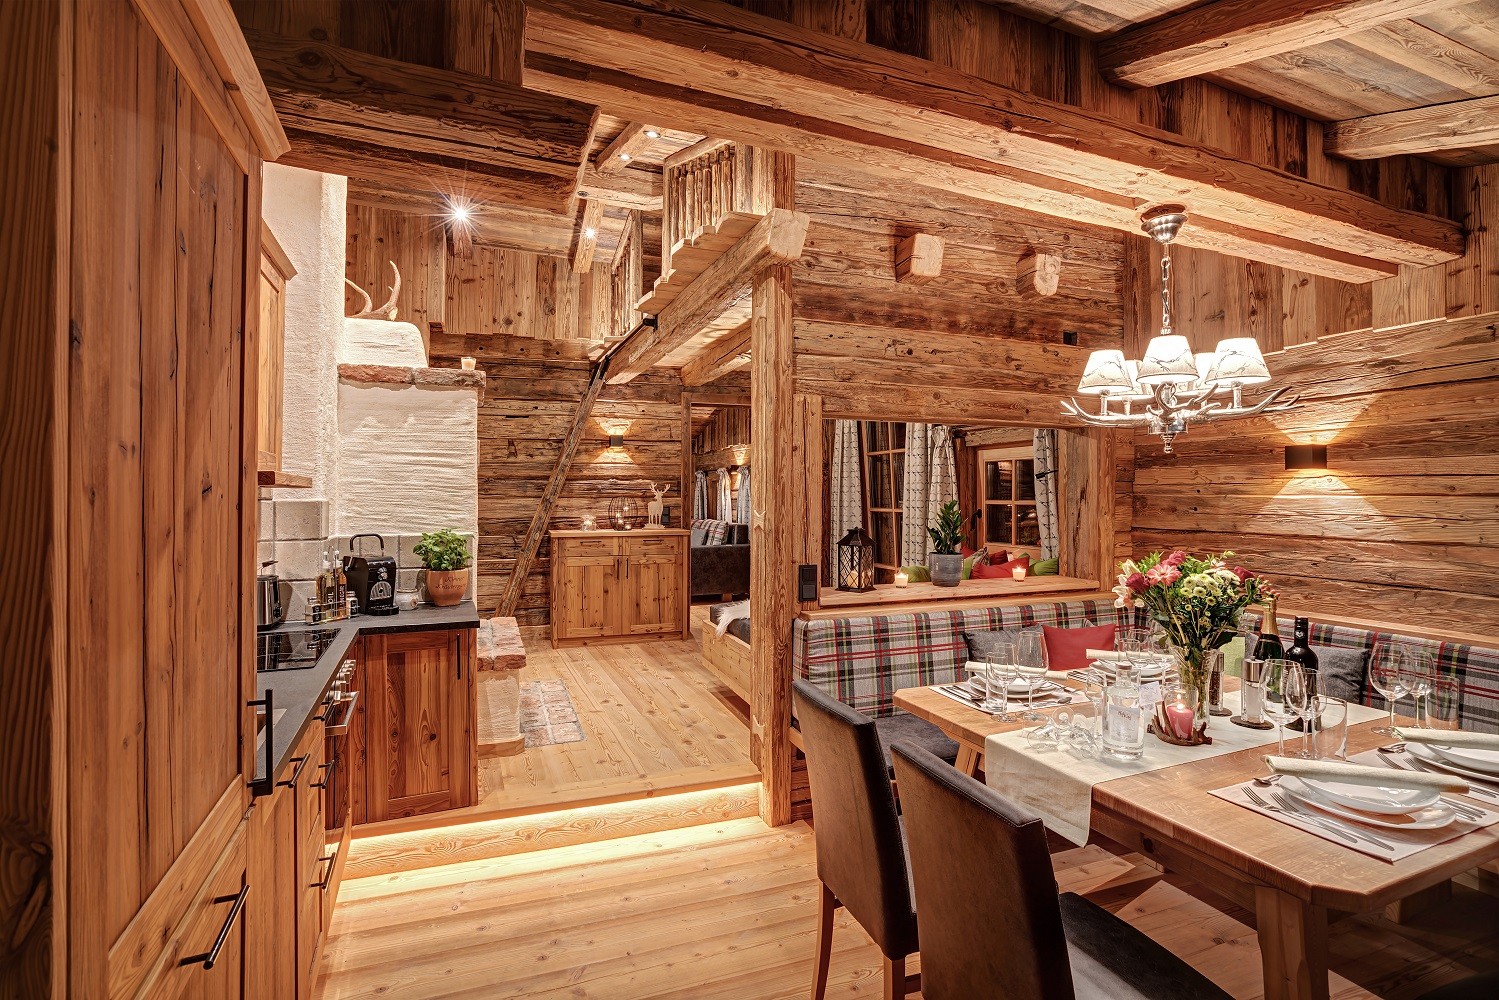 Highking_Chalet_Grünegg_6